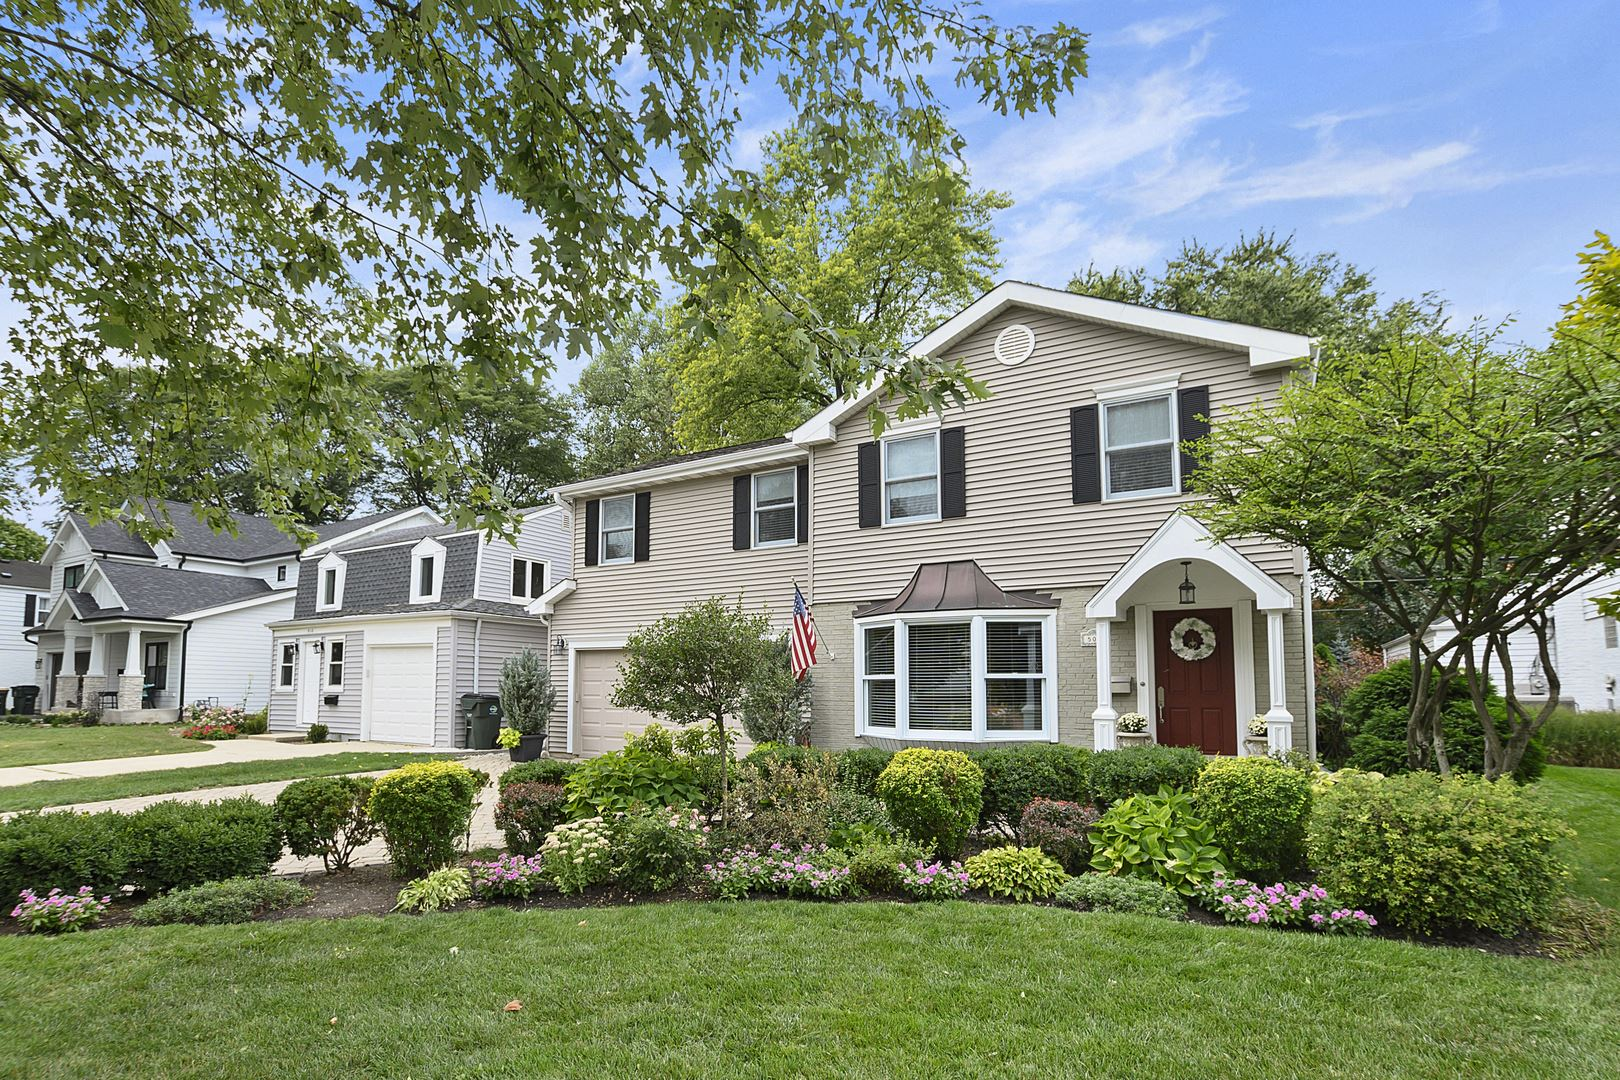 506 S Dryden Place, Arlington Heights, IL 60005 - #: 10848328